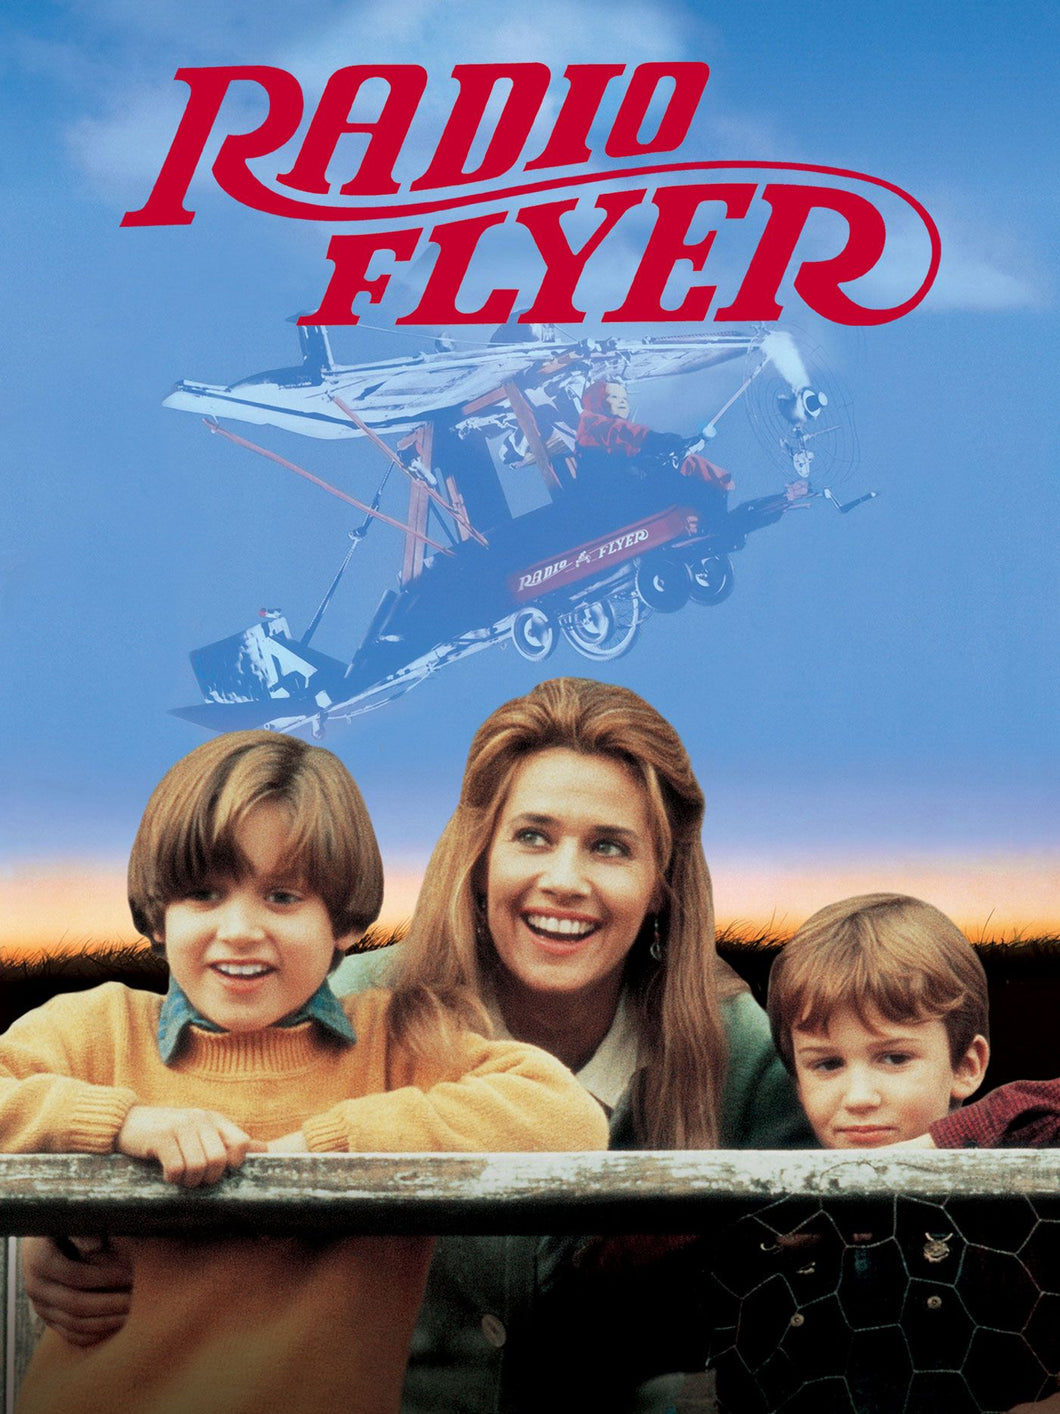 Elijah Wood - Signed Radio Flyer Image (8x10, 11x17)